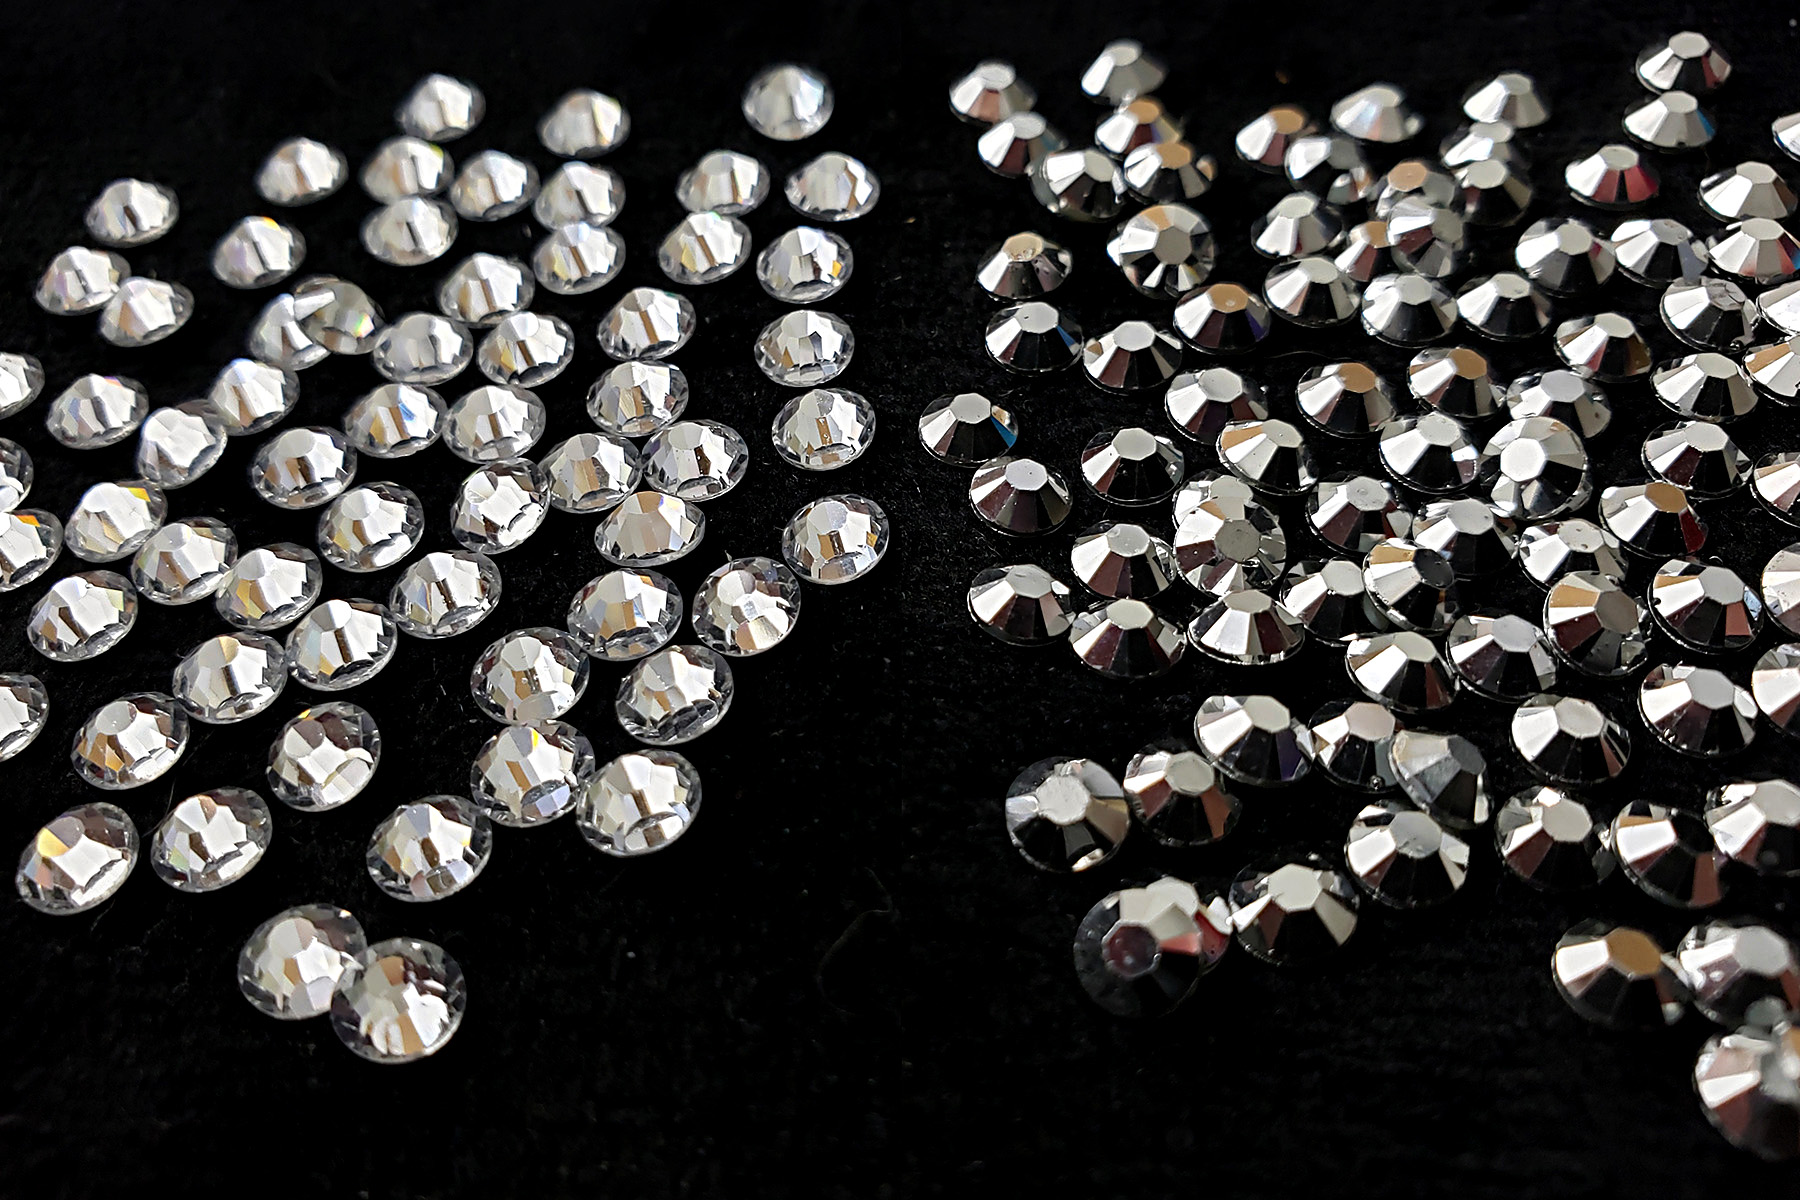 A side by side comparison of clear rhinestones next to silver rhinestones, against a black background.